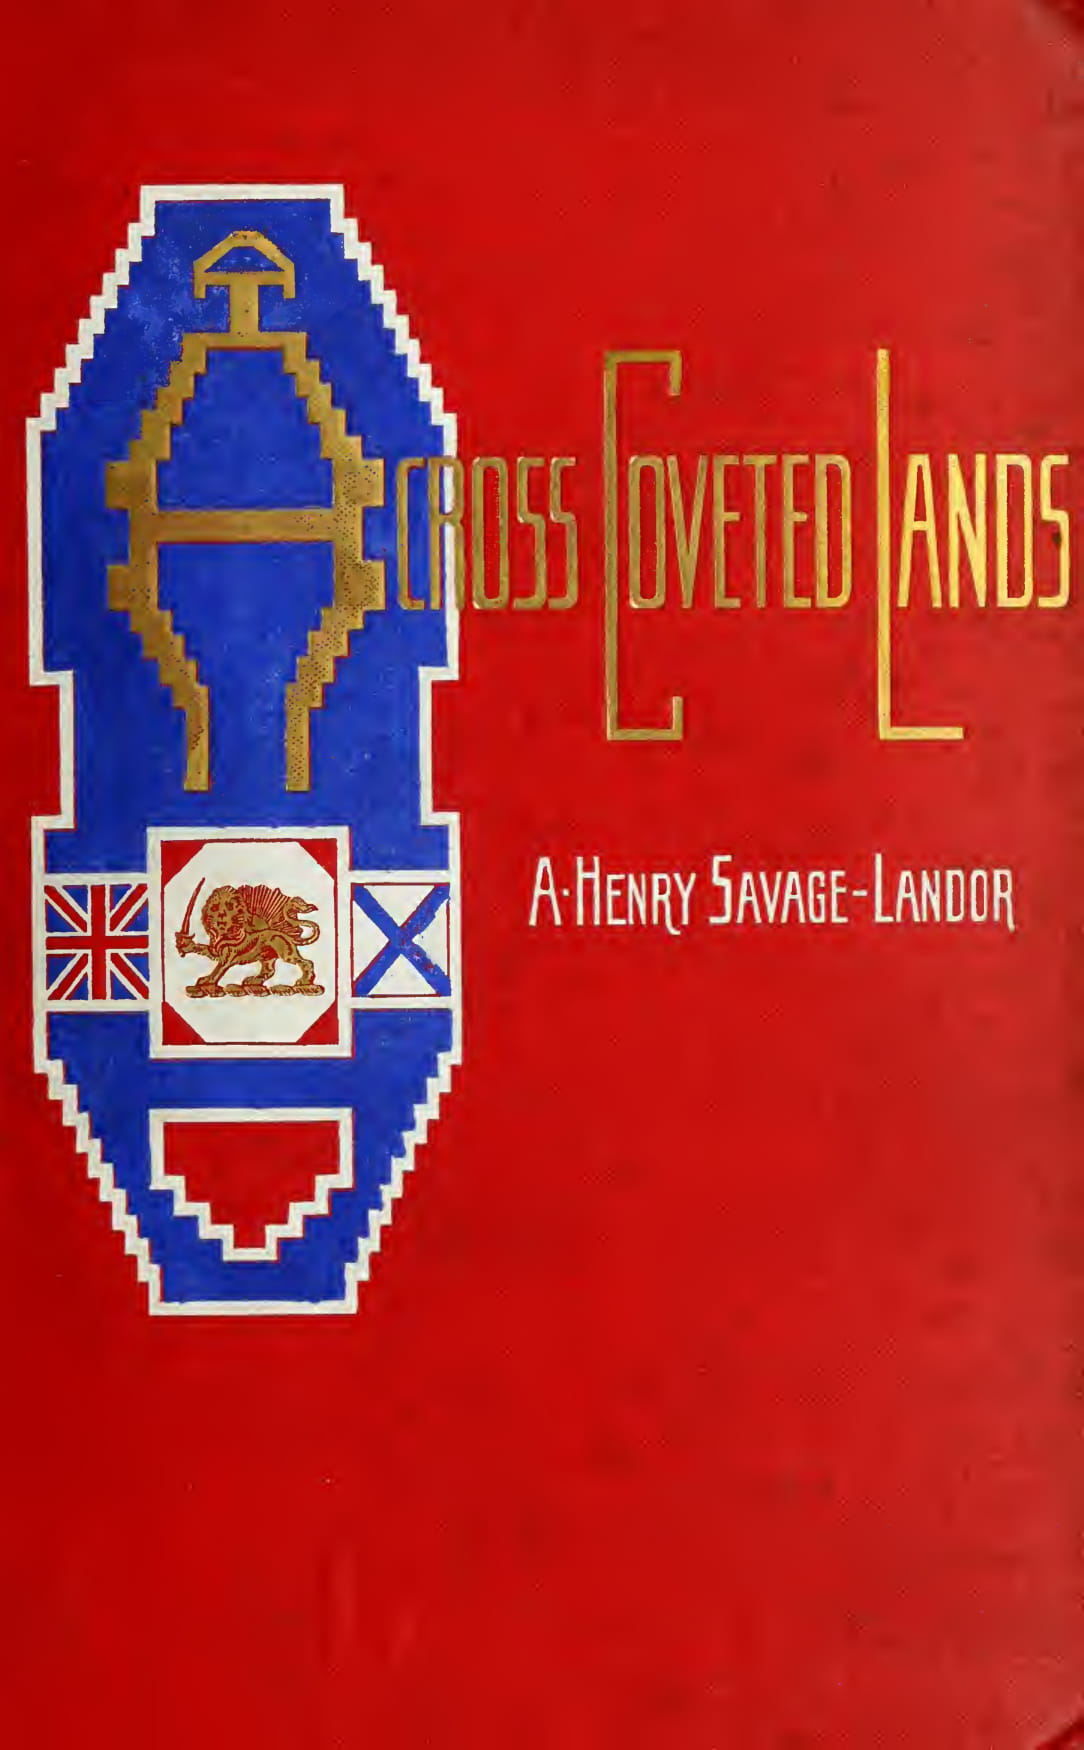 Across Coveted Lands Vol. 2